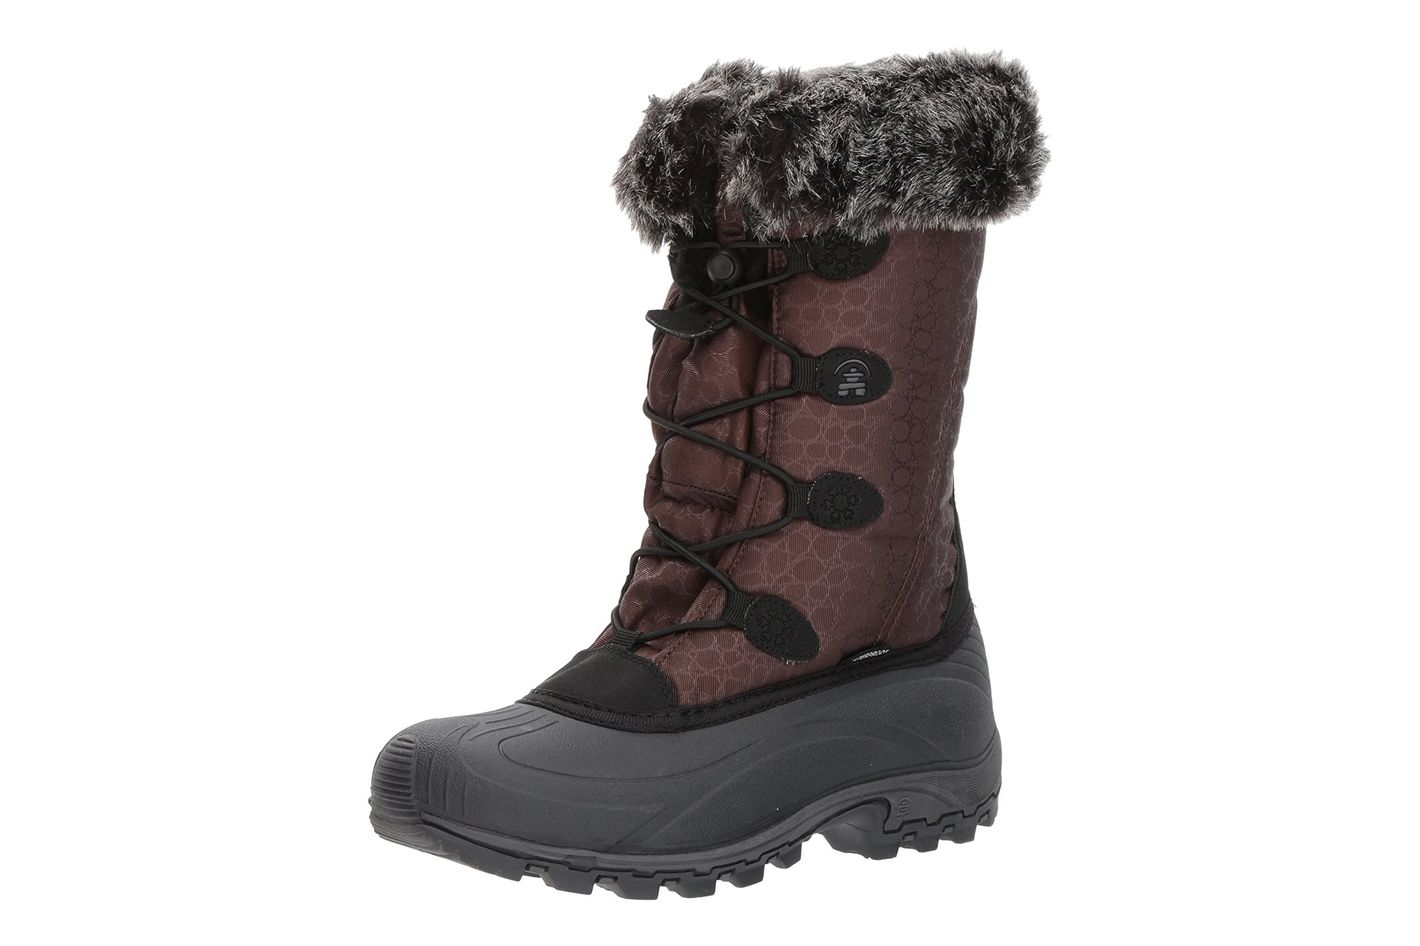 82516c0fed2 Best Winter Boots for Women 2018